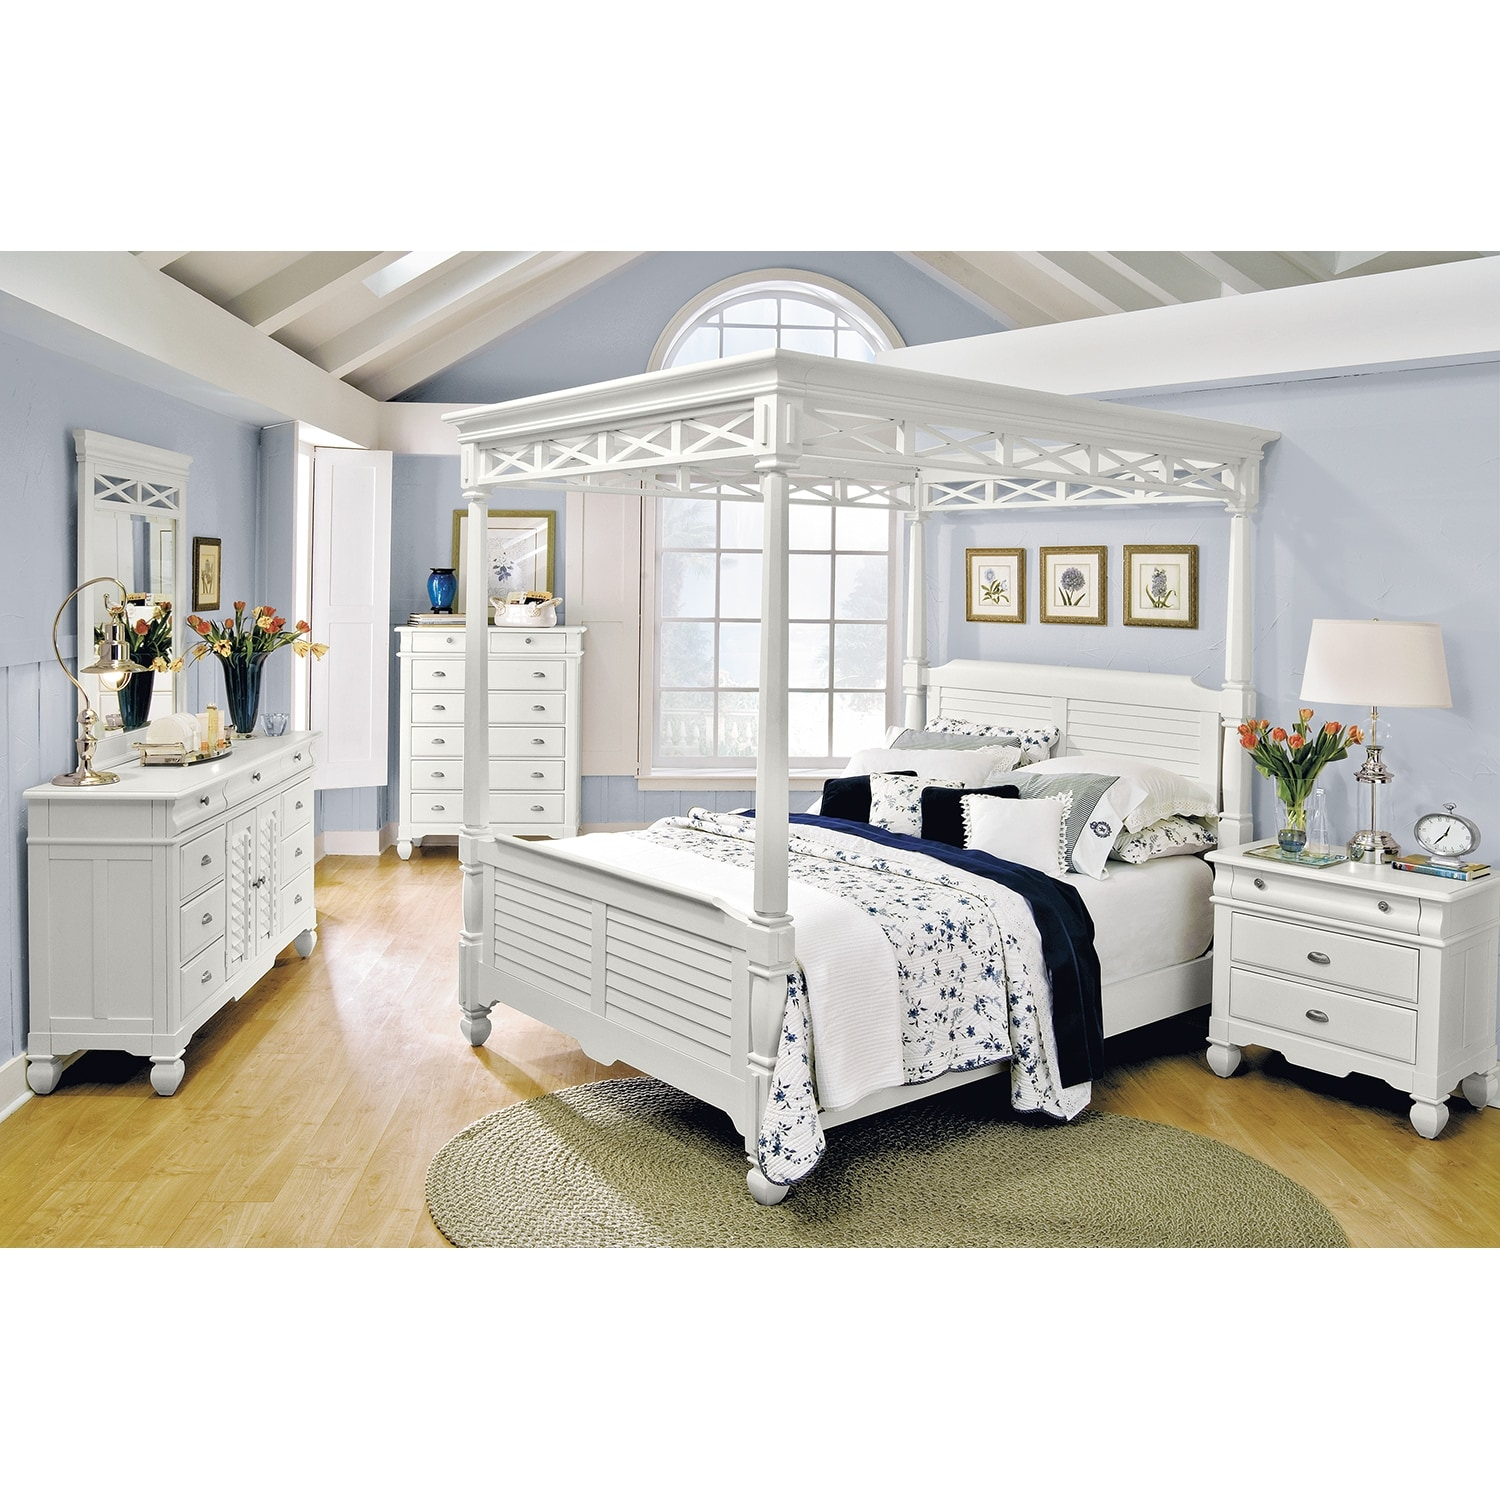 Plantation cove white canopy bedroom queen bed american signature furniture Home design golden city furniture